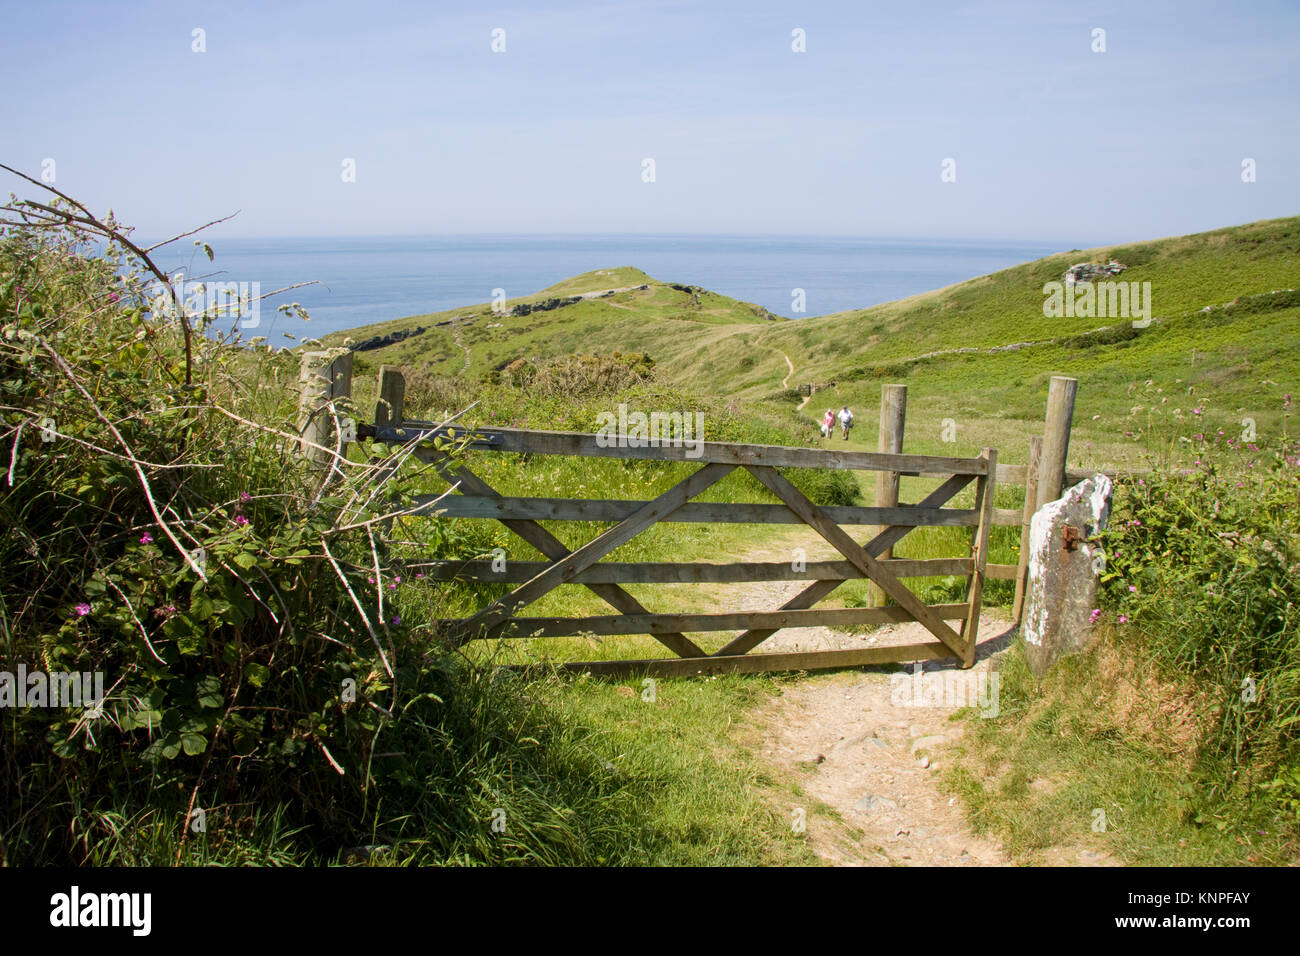 Gate and footpath leading to Barras Nose in north Cornwall, England. - Stock Image